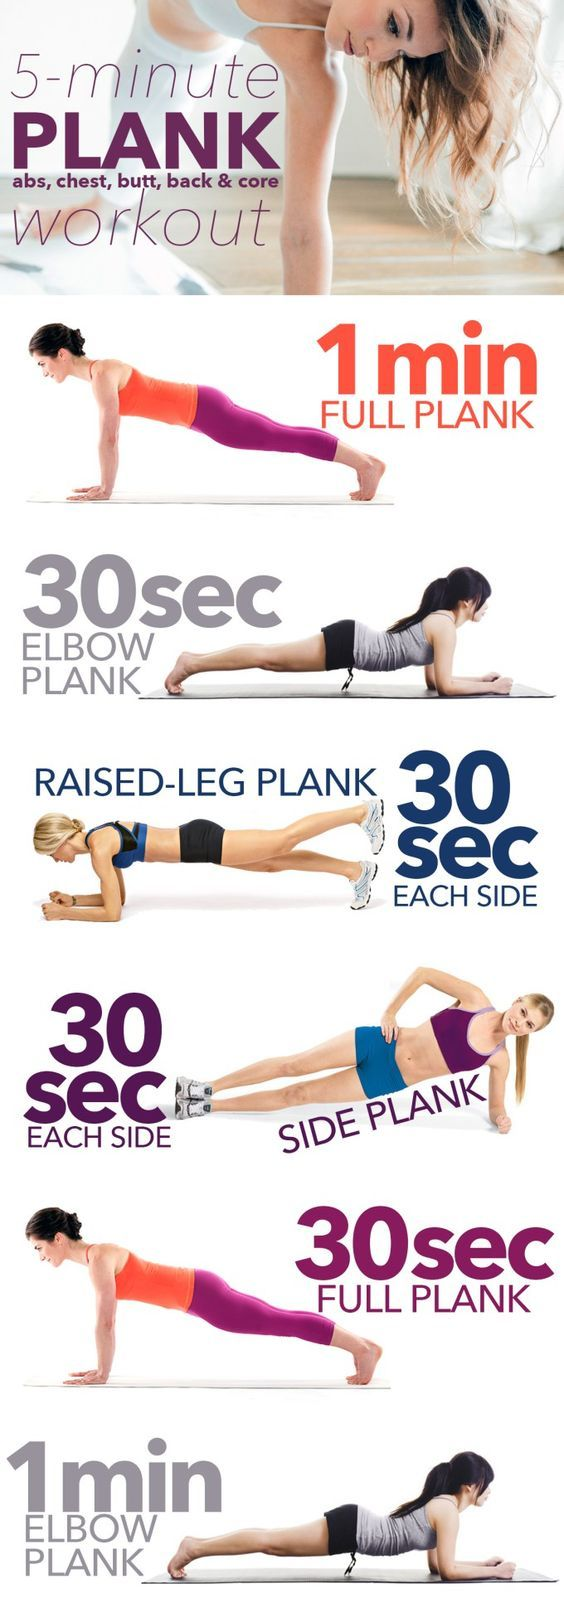 5 Minute Plank, Abs, Chest, Butt, Back And Core Workout Infographic